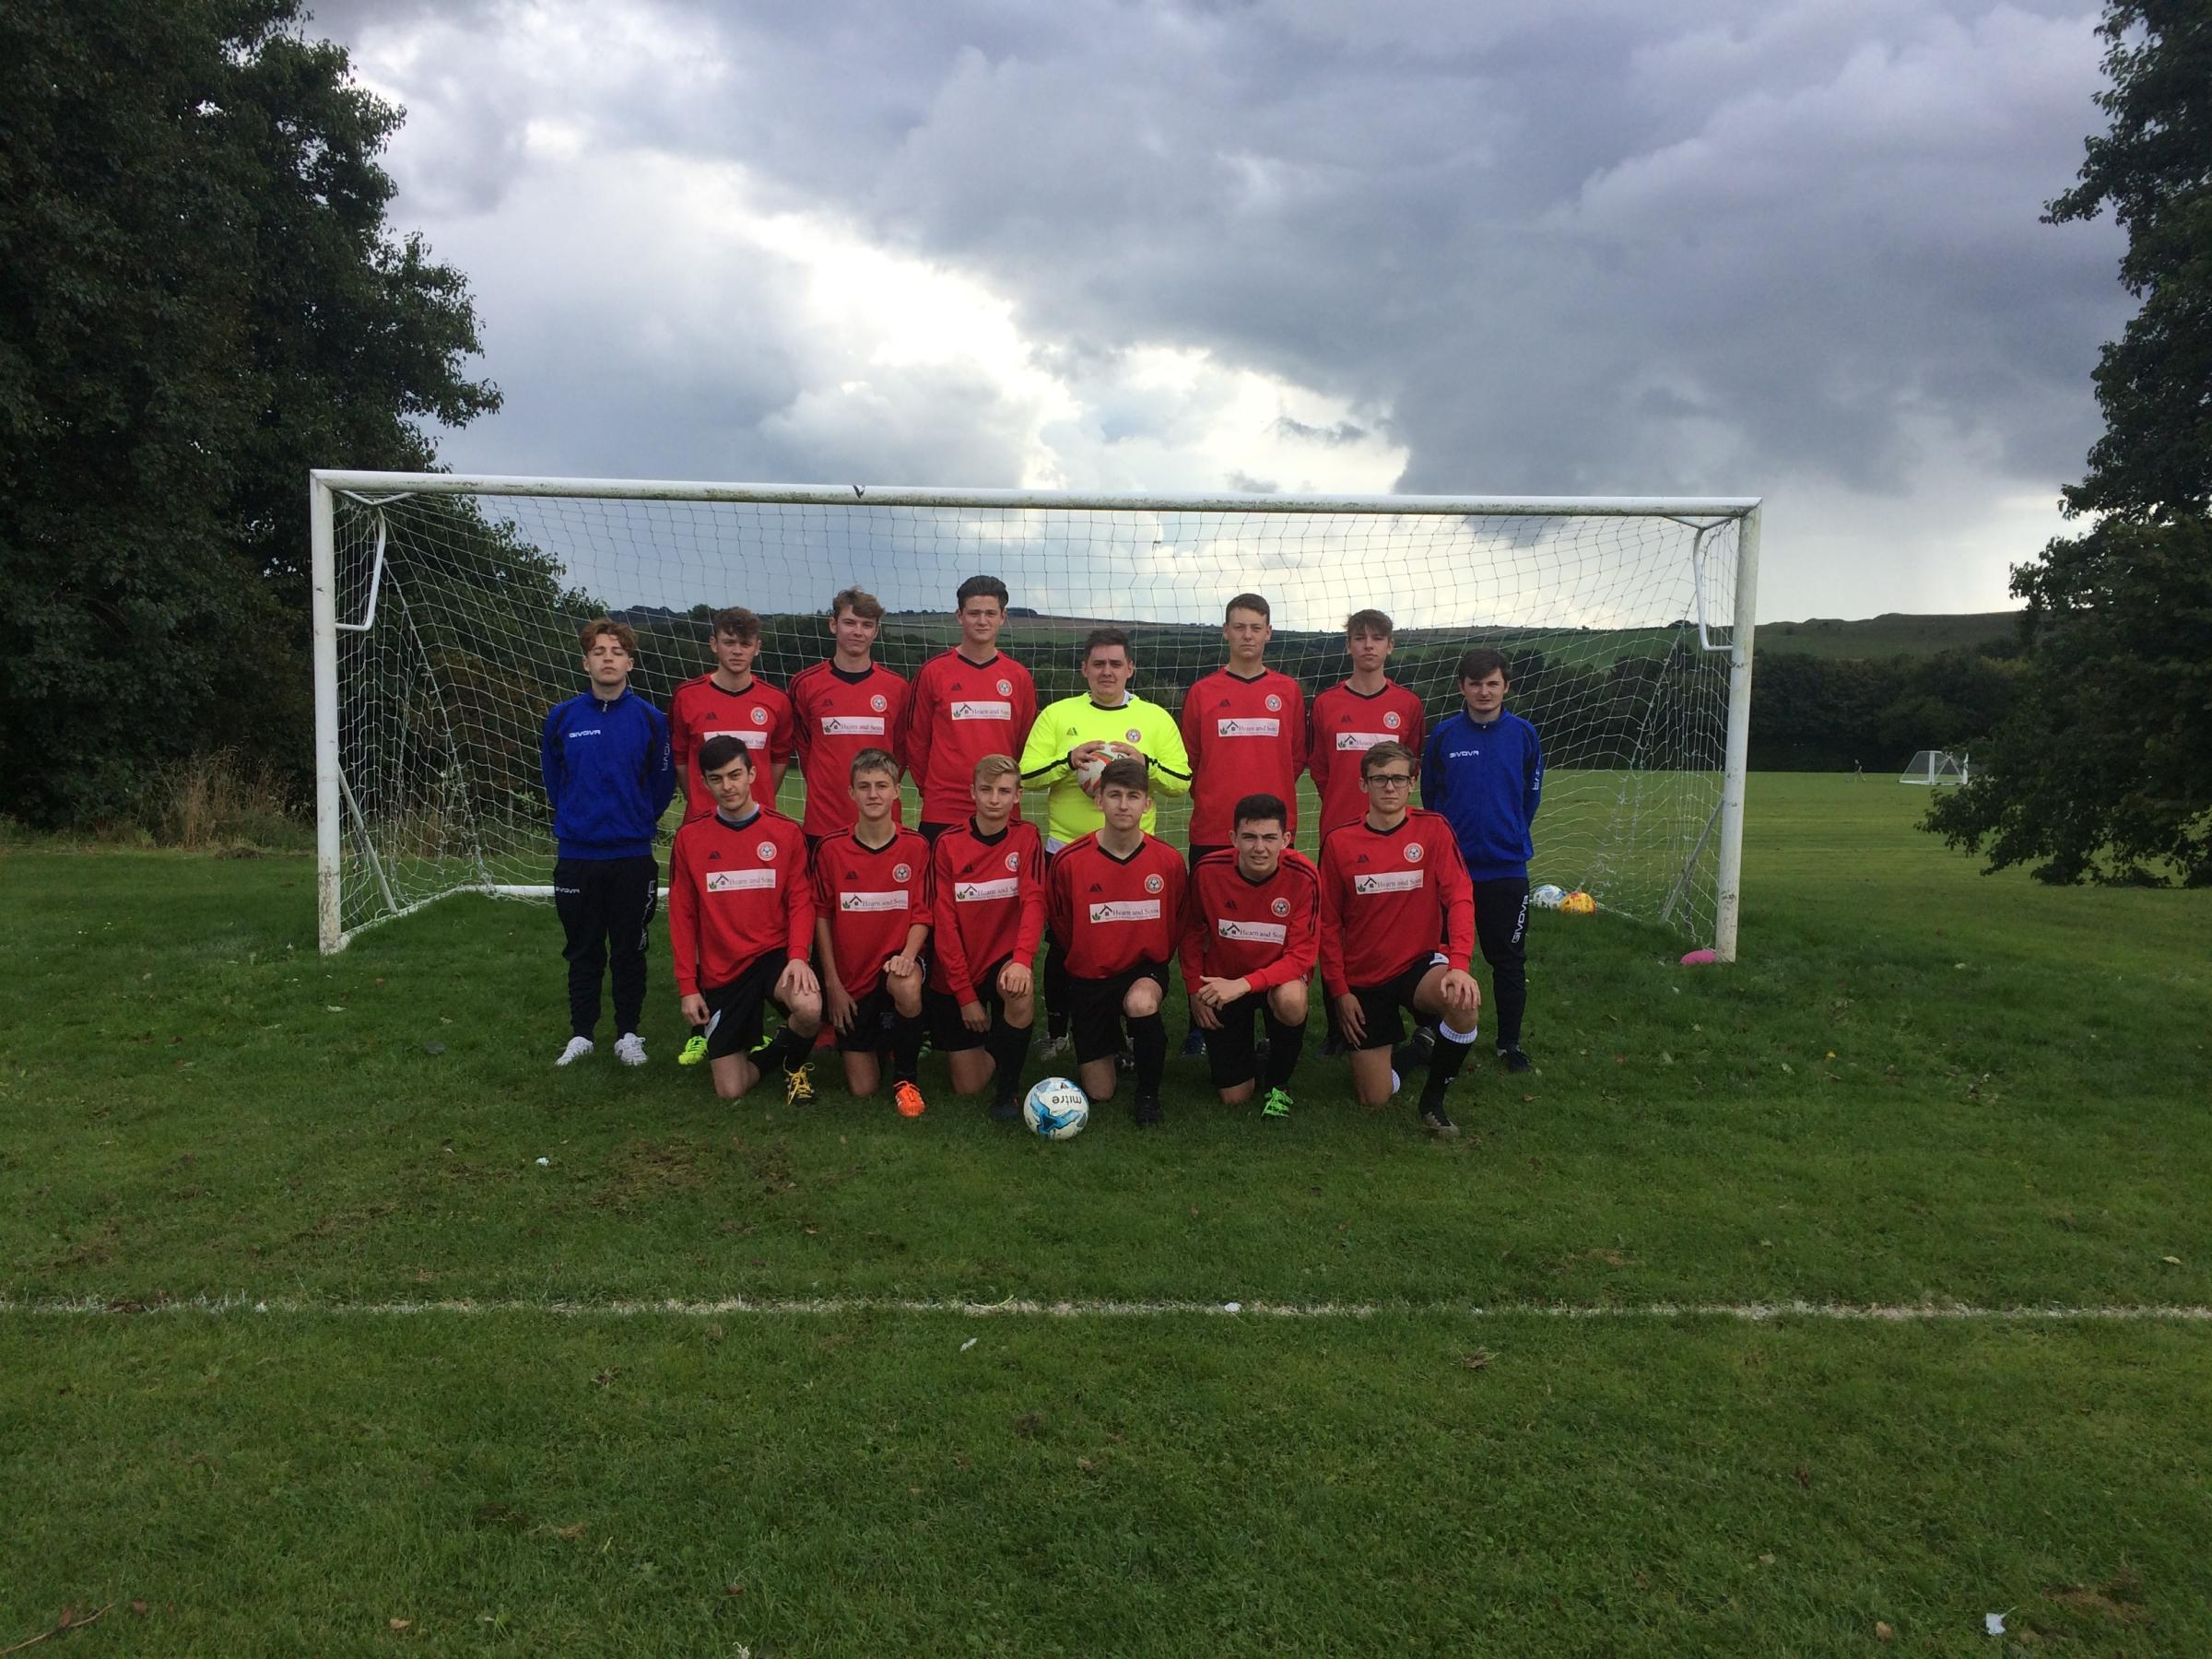 TABLE TOPPERS: Piddlehinton Reserves won 4-1 against title rivals Verwood Town